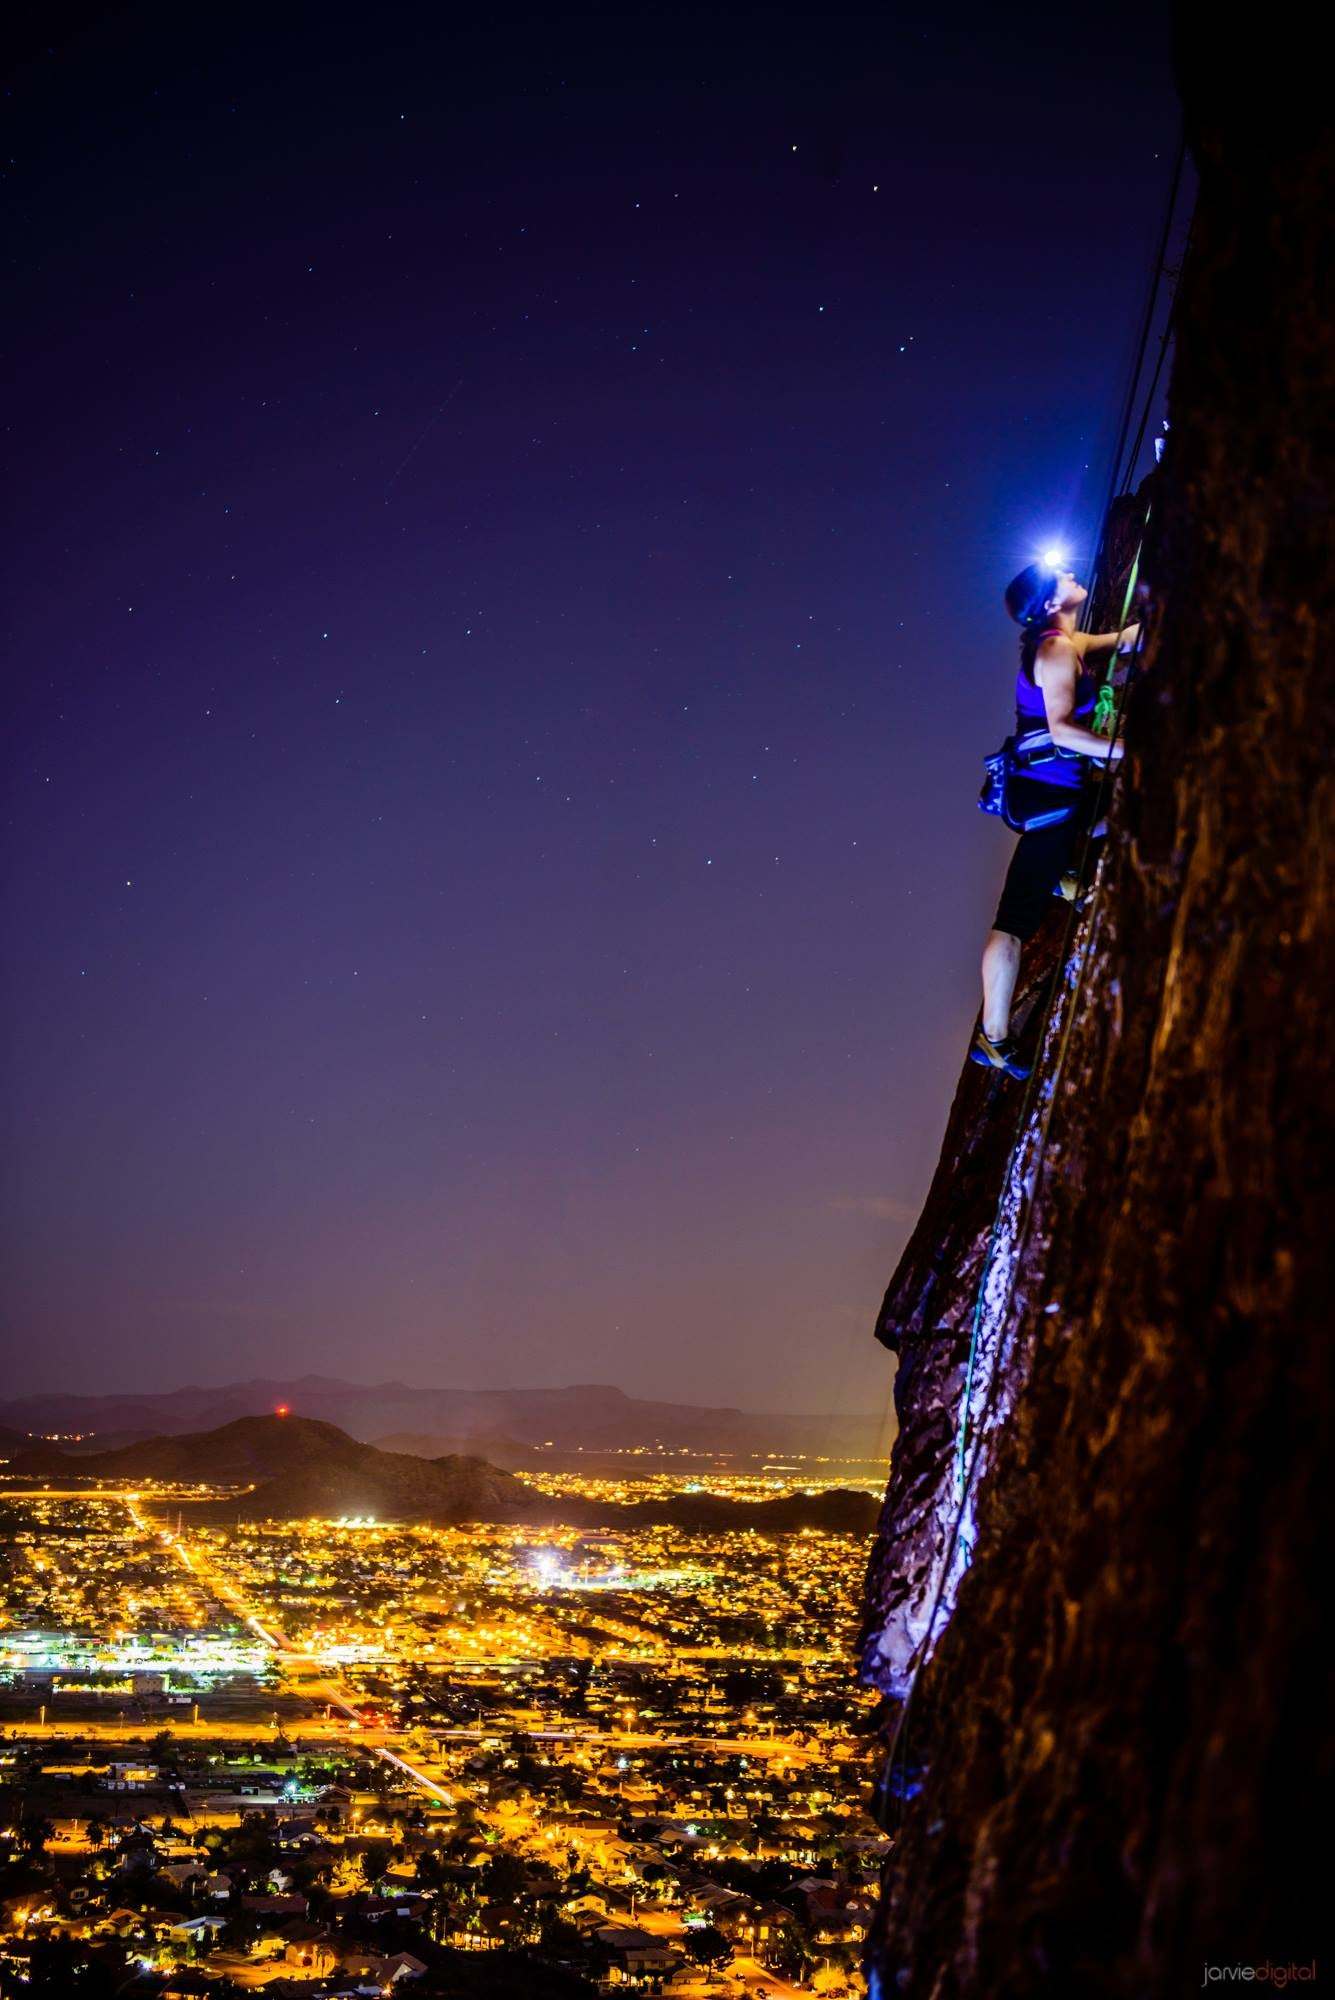 Spectacular photo of a woman climbing a vertical rock wall at night